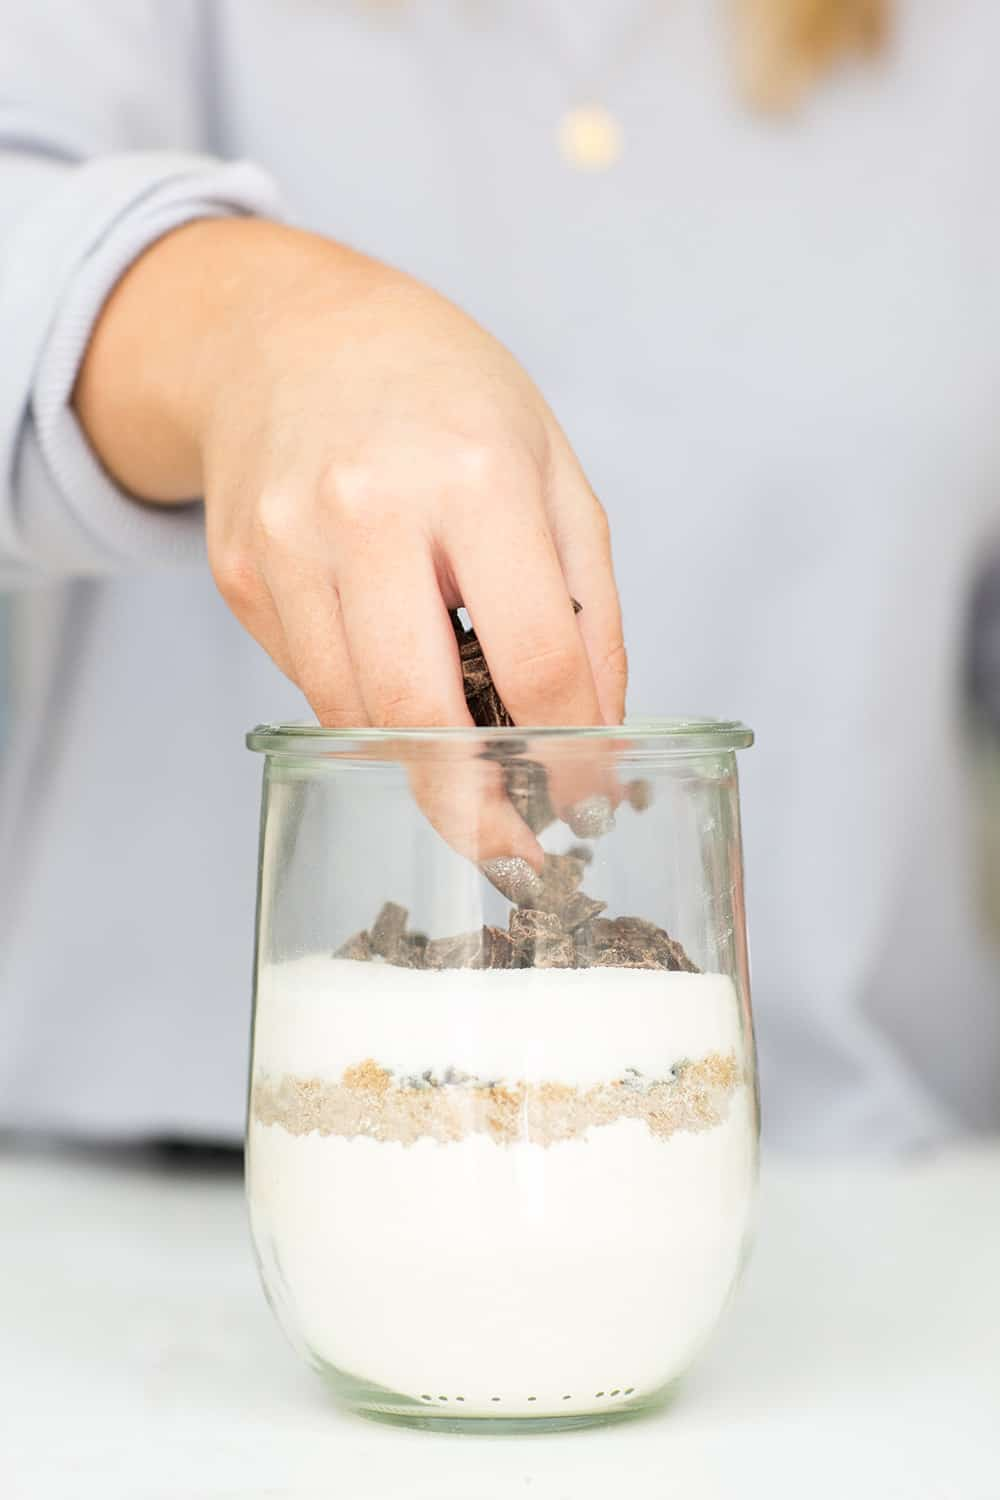 layering chocolate on top layer in jar, creating cookie mix in a jar